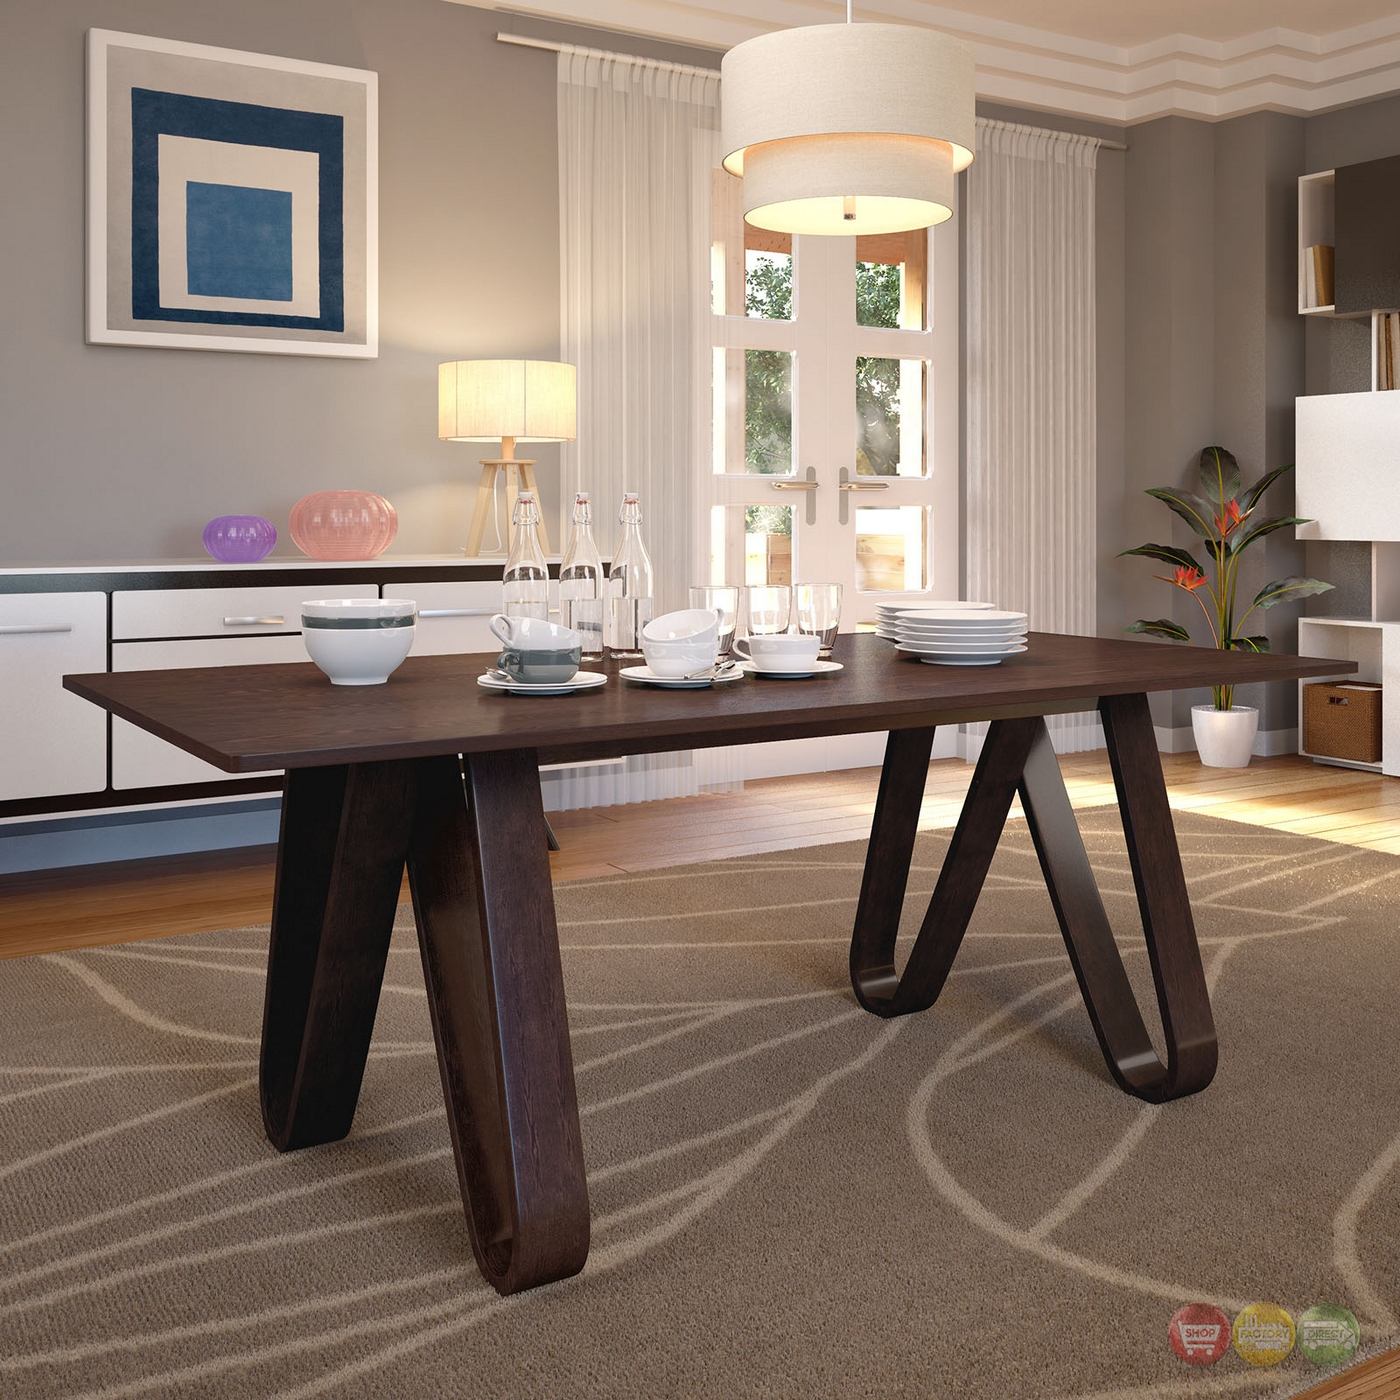 Modern Rustic Dining Table: Cision Modern Rustic Wood Grain Finished Dining Table W